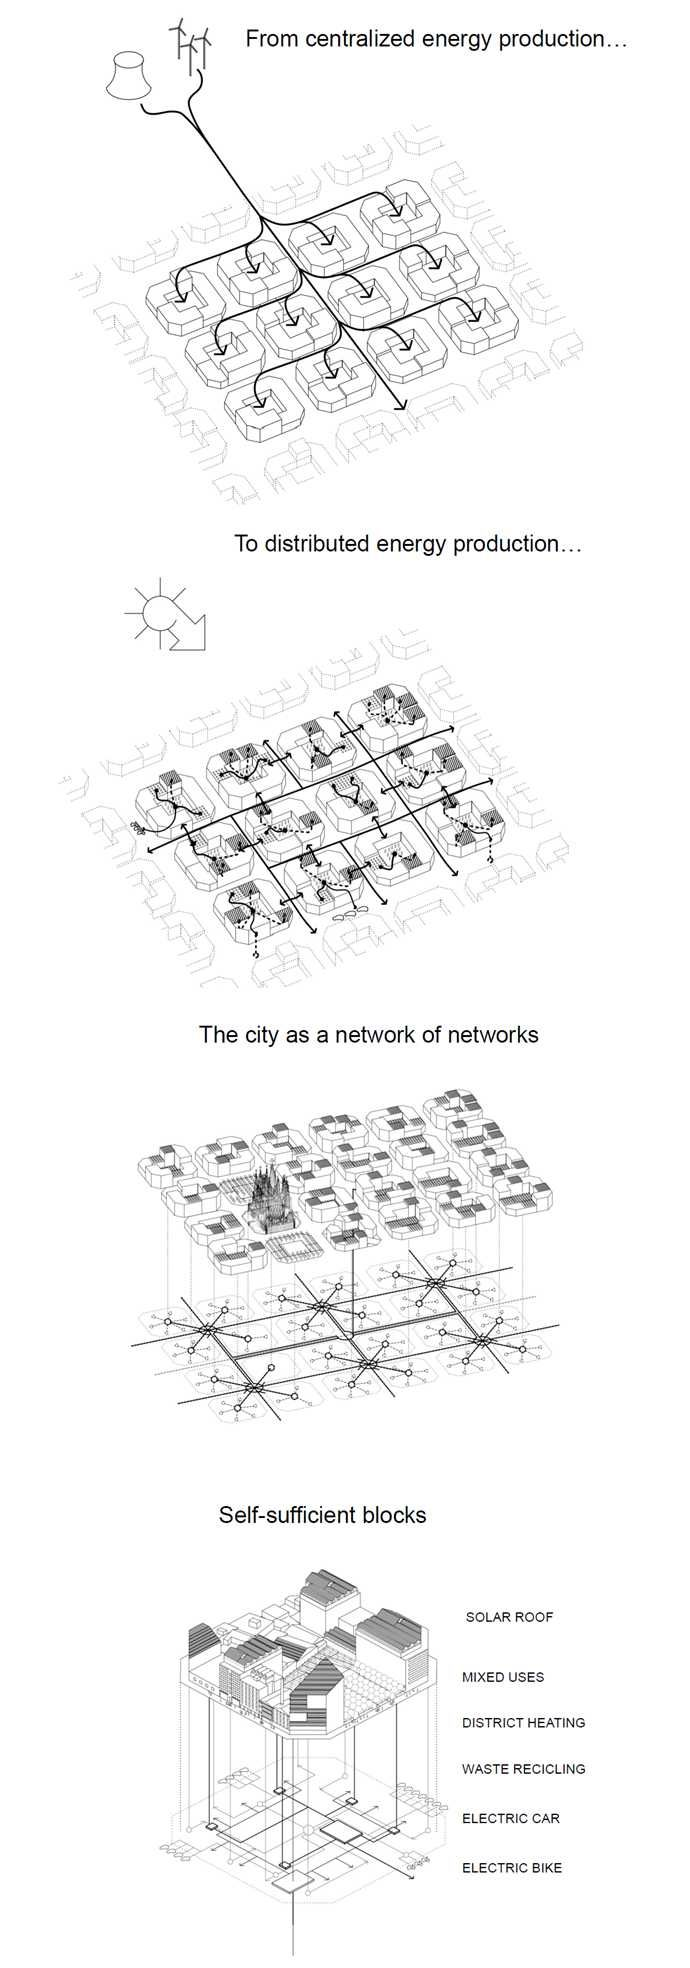 298 best Chief Architect images on Pinterest | Chief architect ...